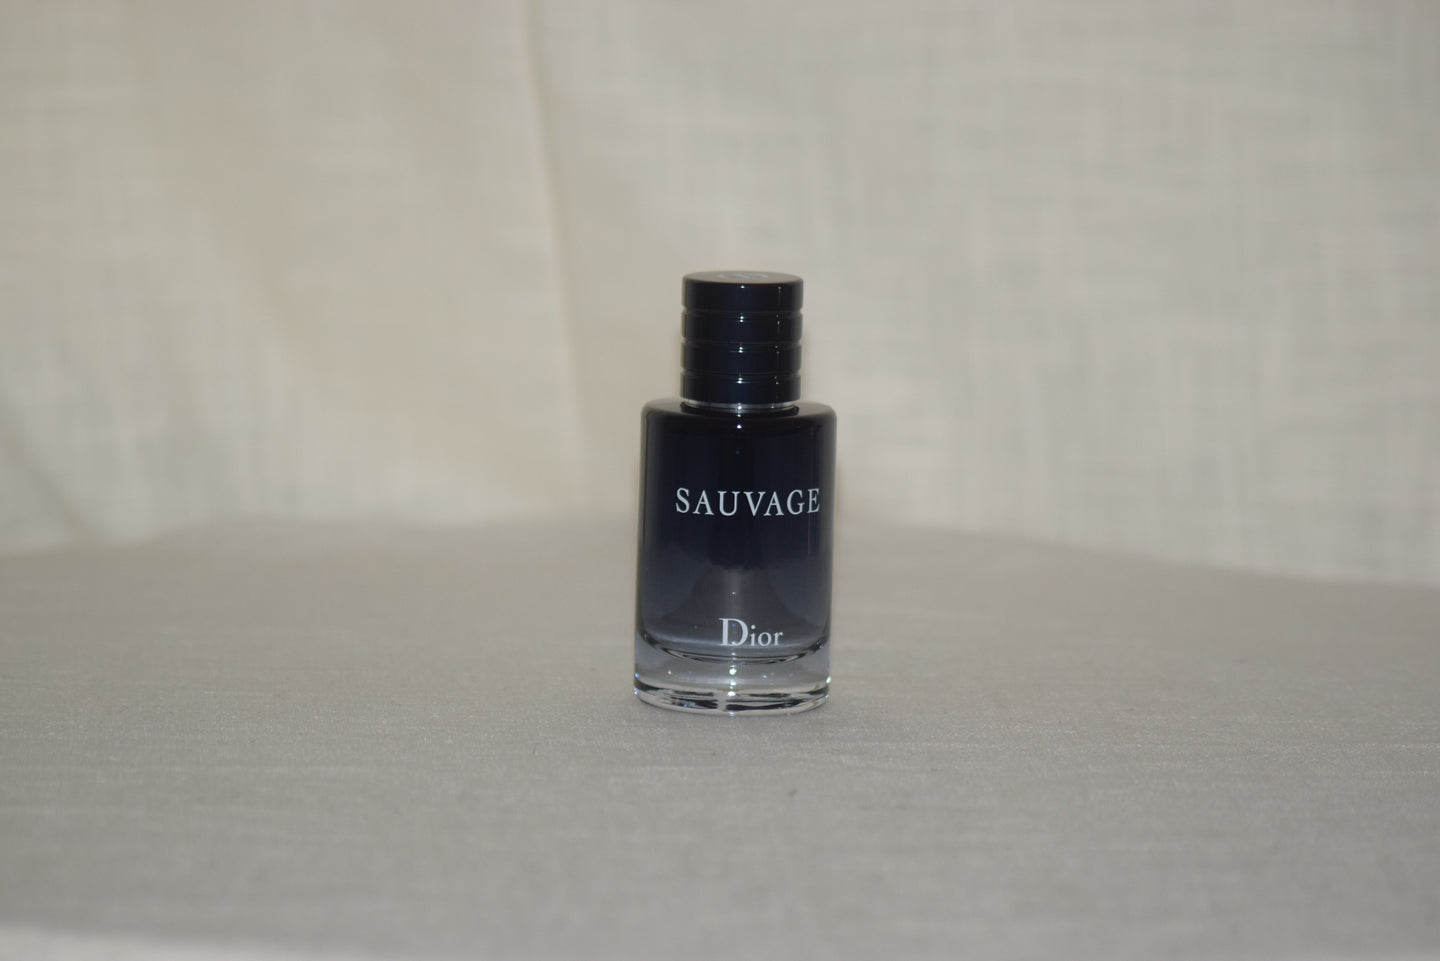 Christian Dior Sauvage Men